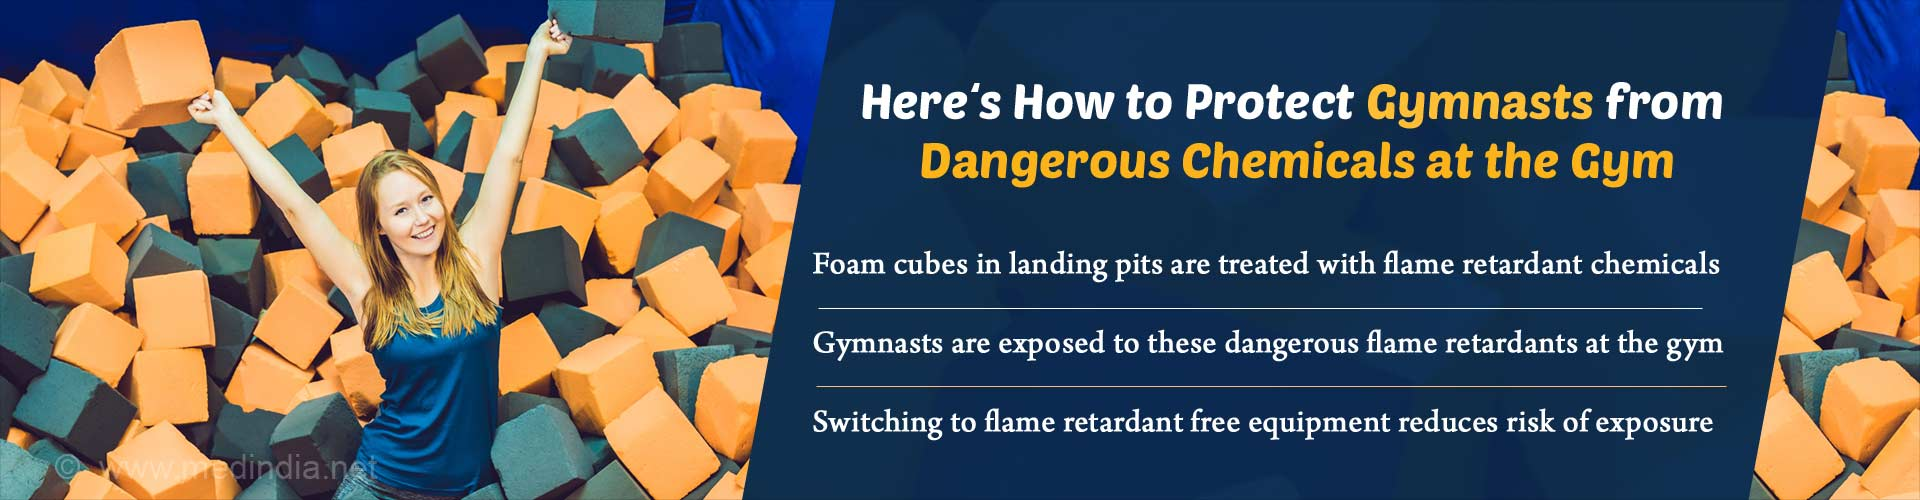 Here''s how to protect gymnasts from dangerous chemicals at the gym. Foam cubes in landing pits are treated with flame retardant chemicals. Gymnasts are exposed to these dangerous flame retardants at the gym. Switching to flame retardant free equipment reduces risk of exposure.